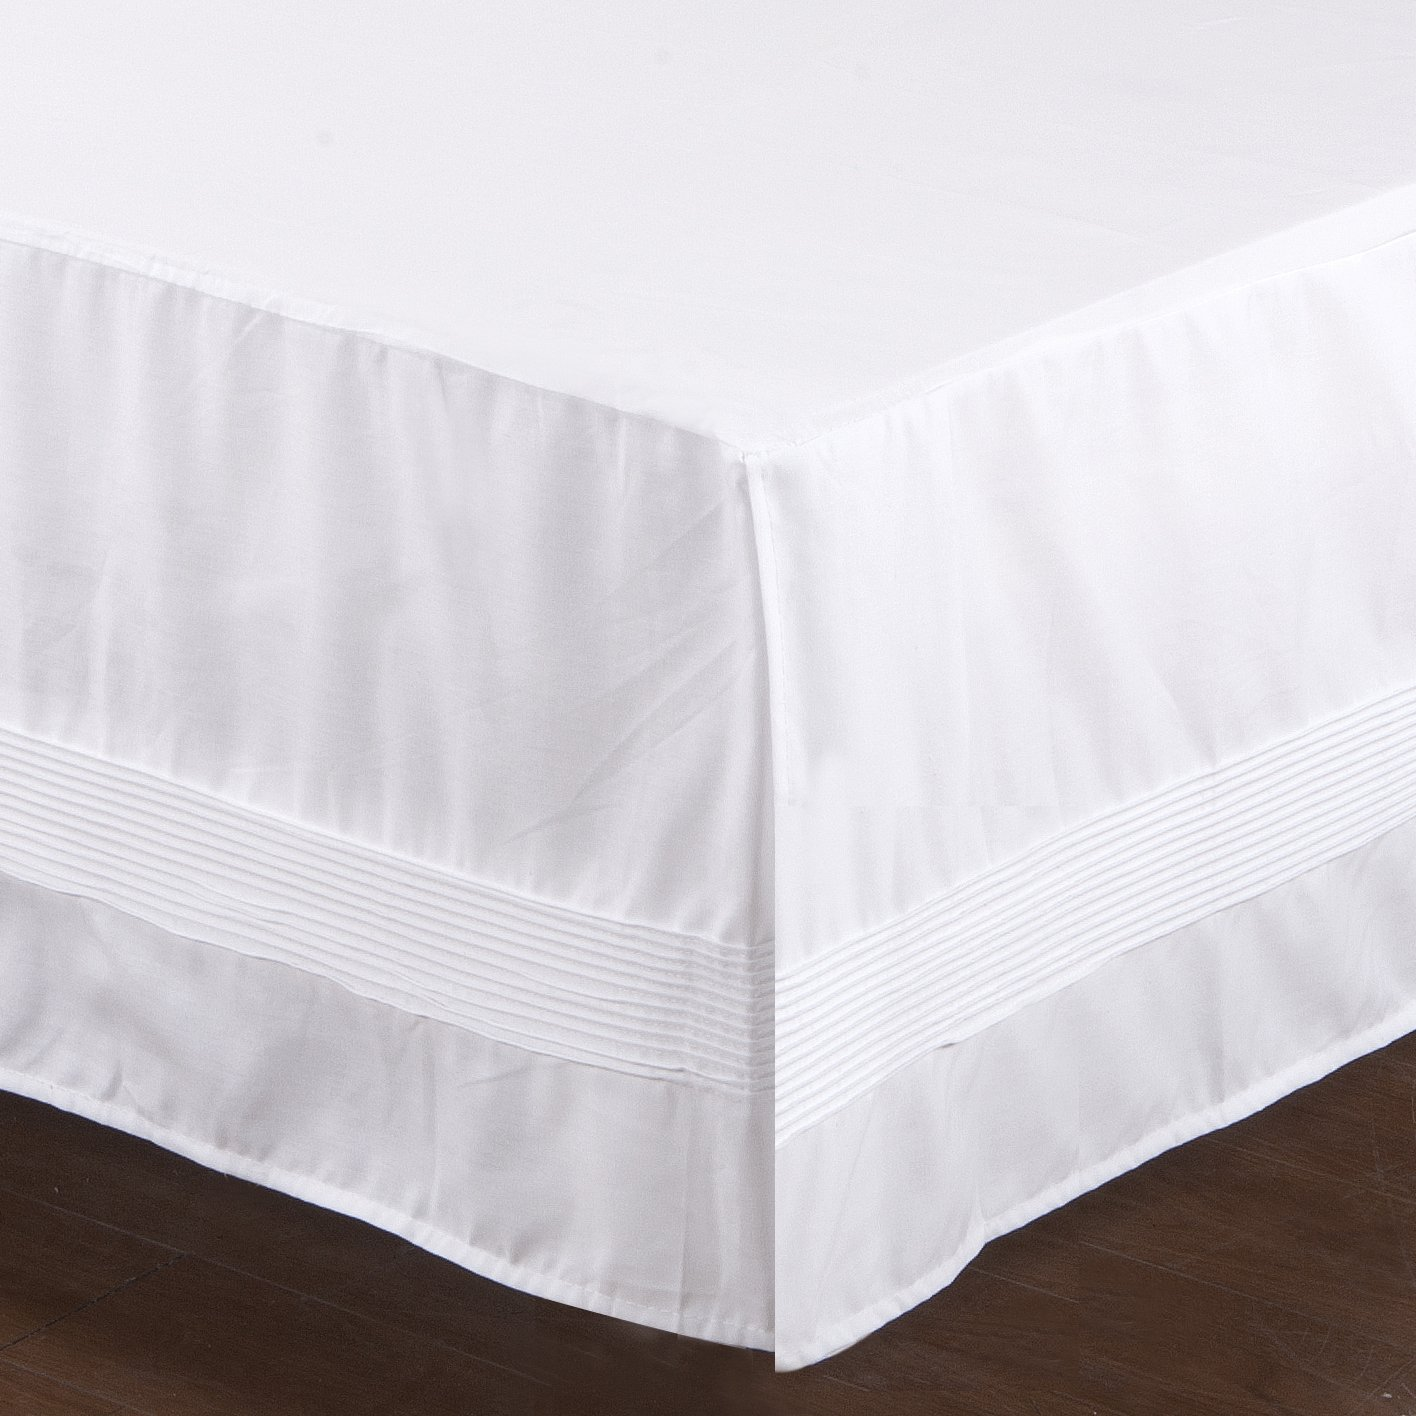 Valea Home Bed Skirt with Stitch on White Dust Ruffle with Split Corners, Durable Elegant Luxury Bedskirt King 14-inch Tailored Drop